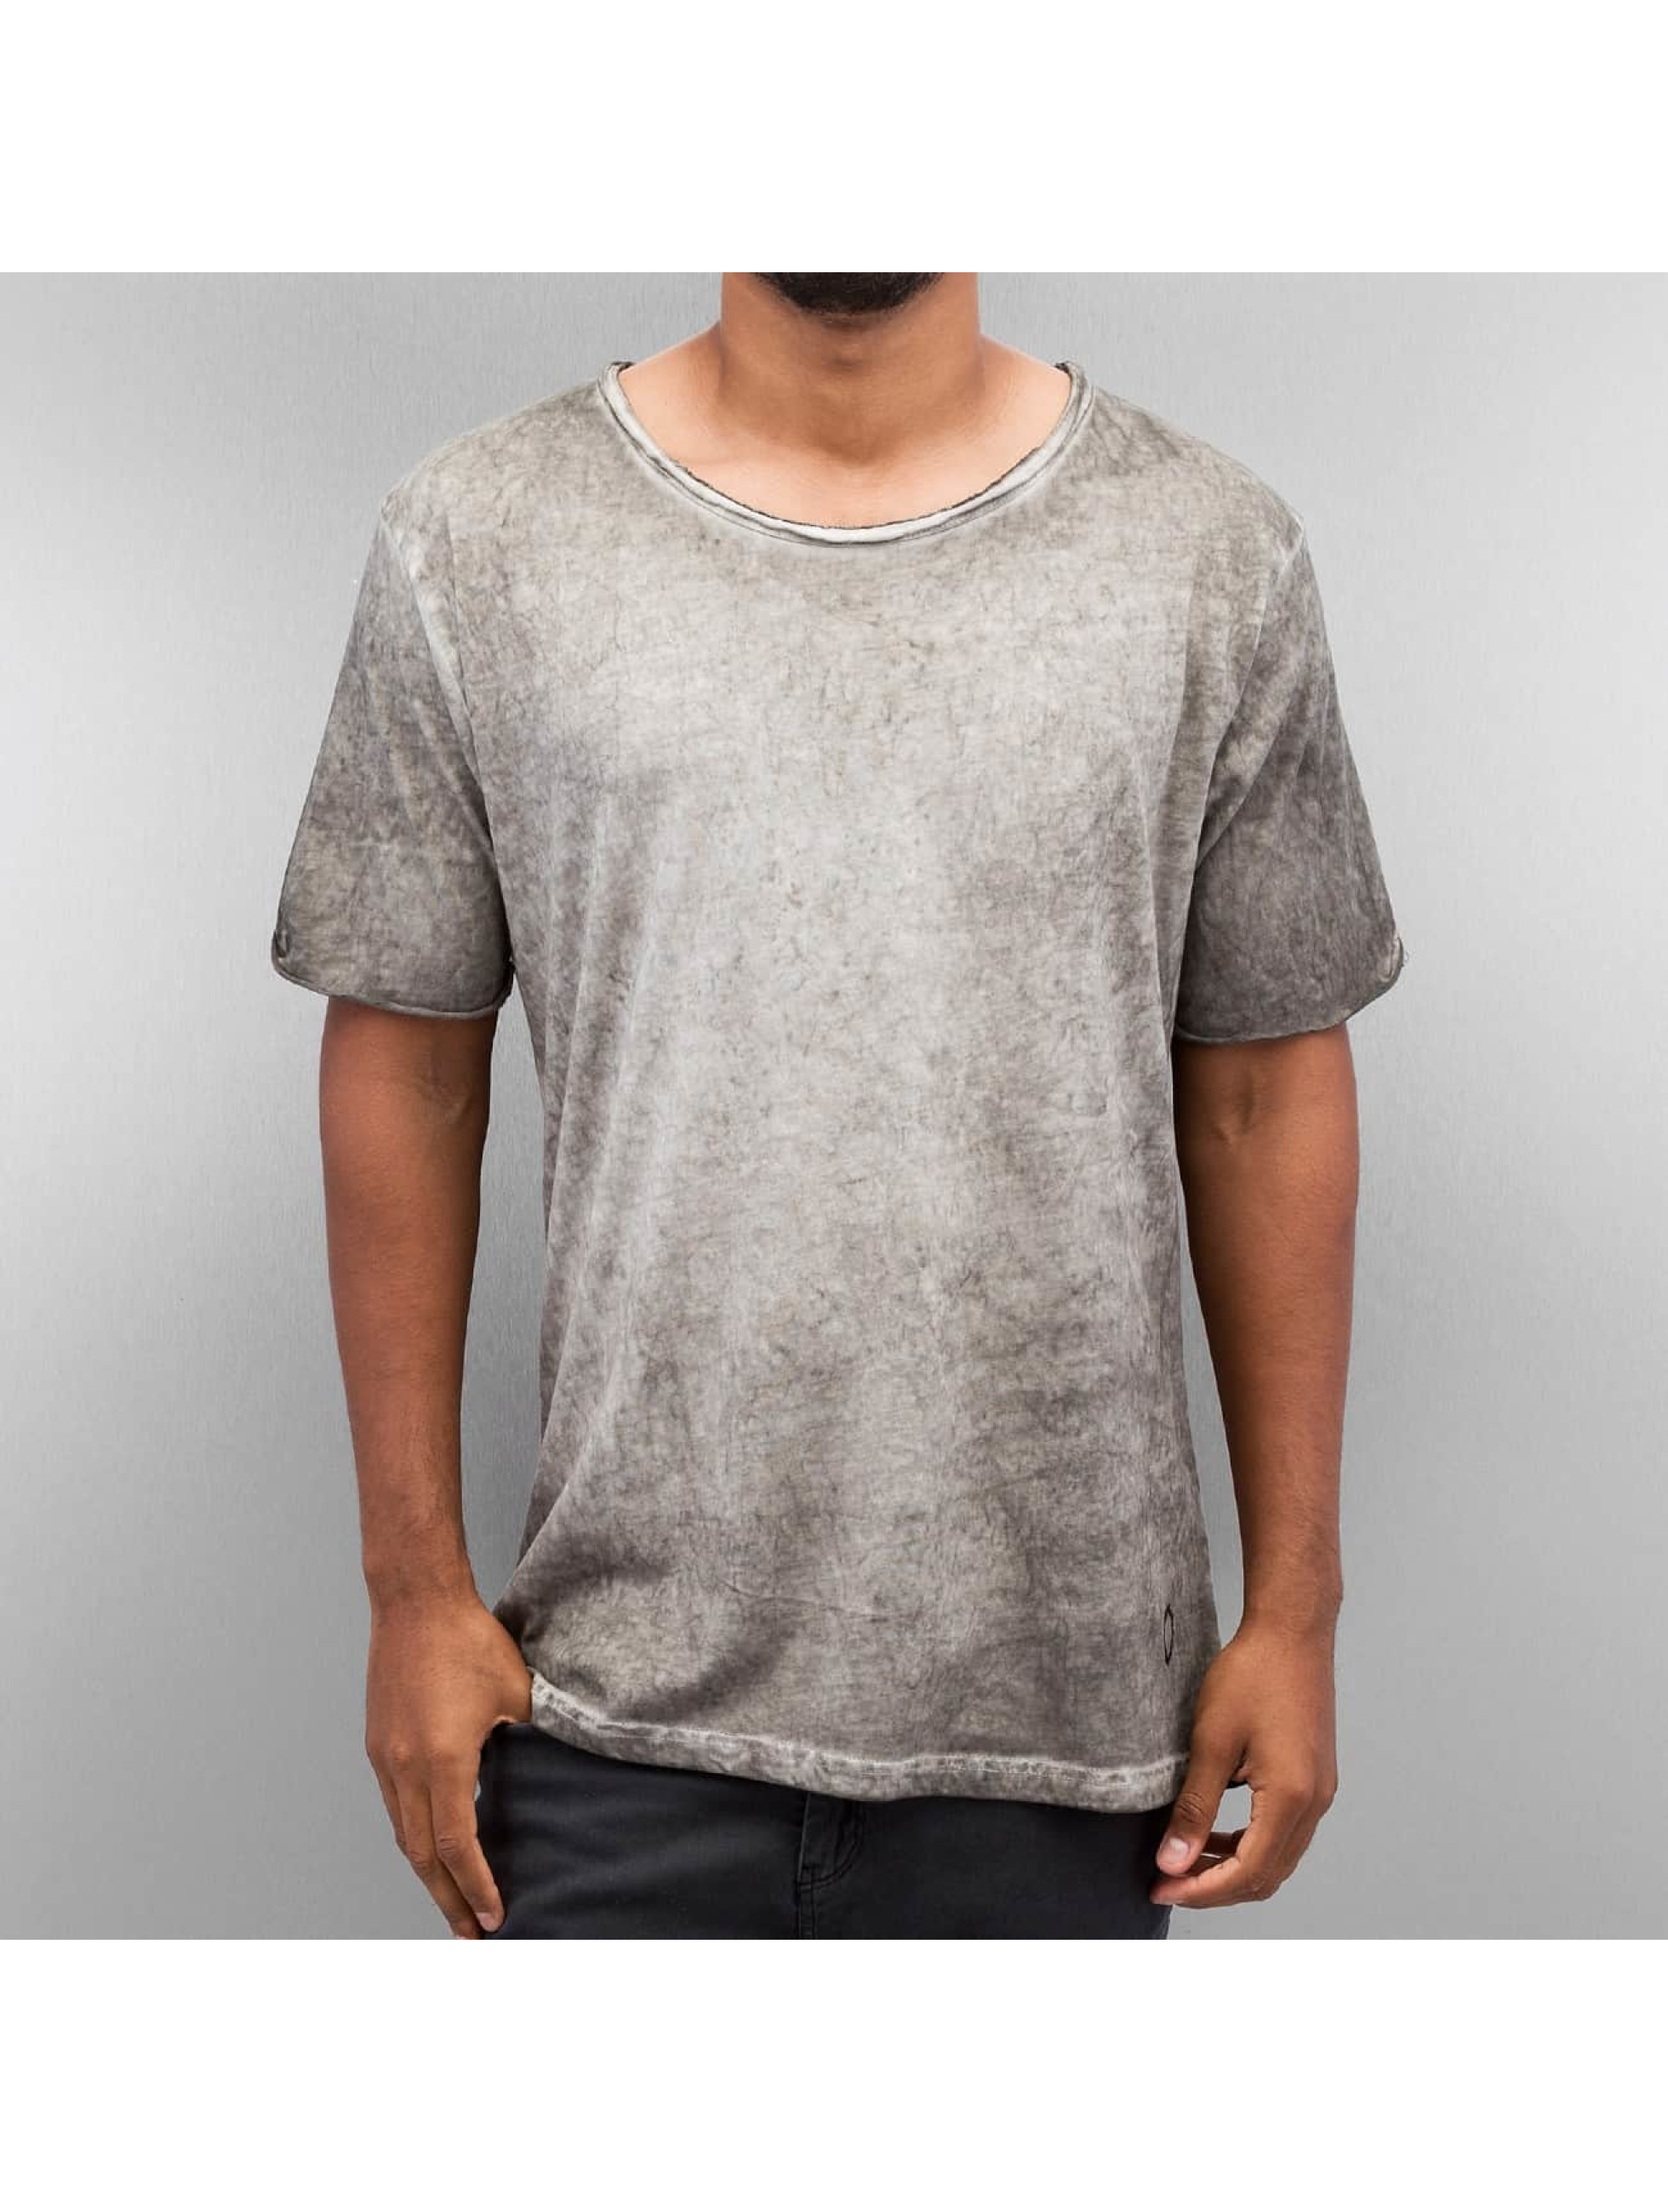 Yezz Haut / T-Shirt Washed en gris